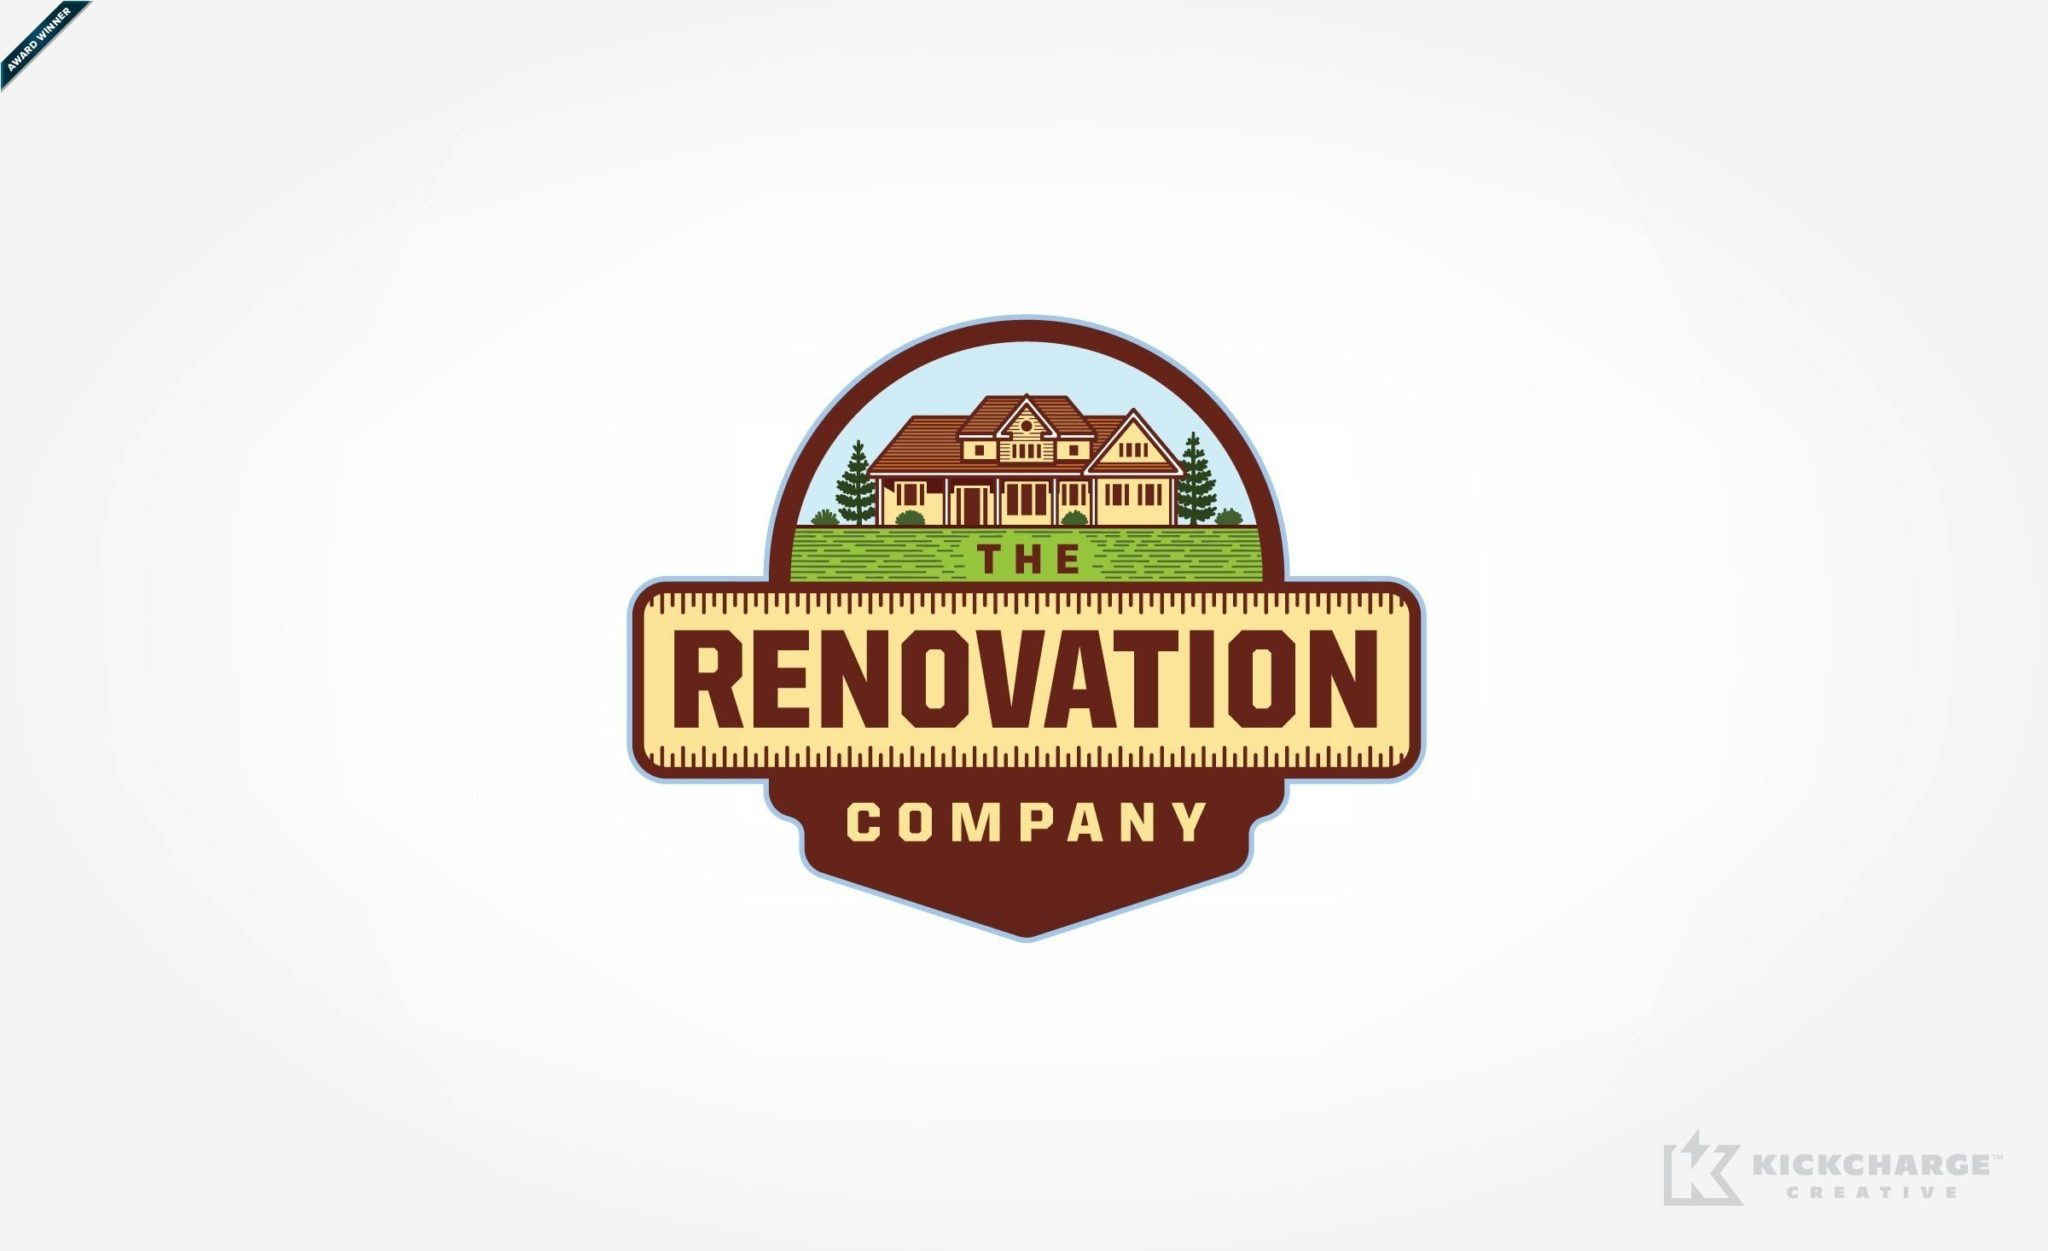 The renovation company kickcharge creative kickcharge for Remodeling companies